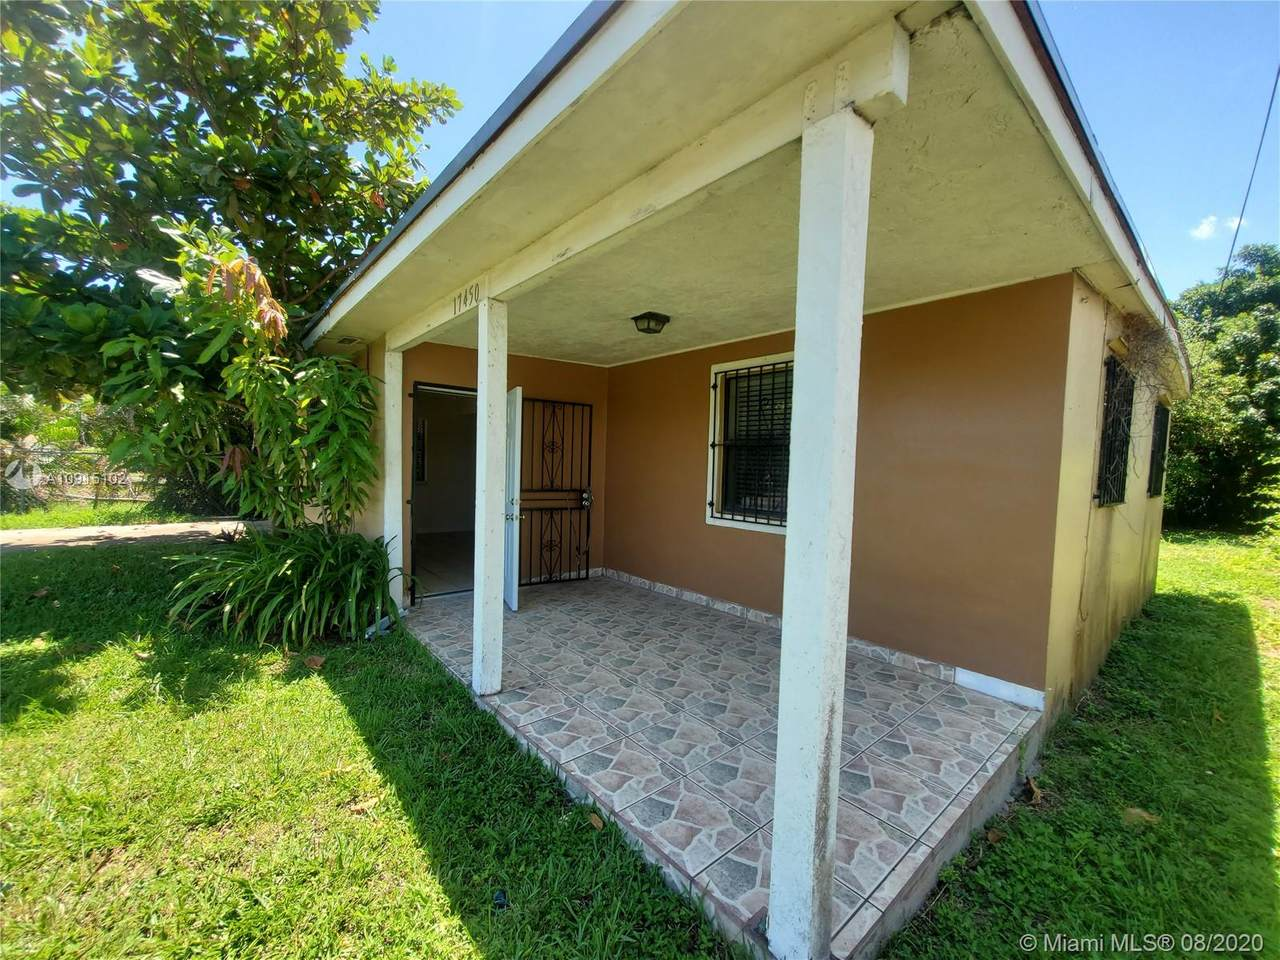 17450 103rd Ave - Photo 1